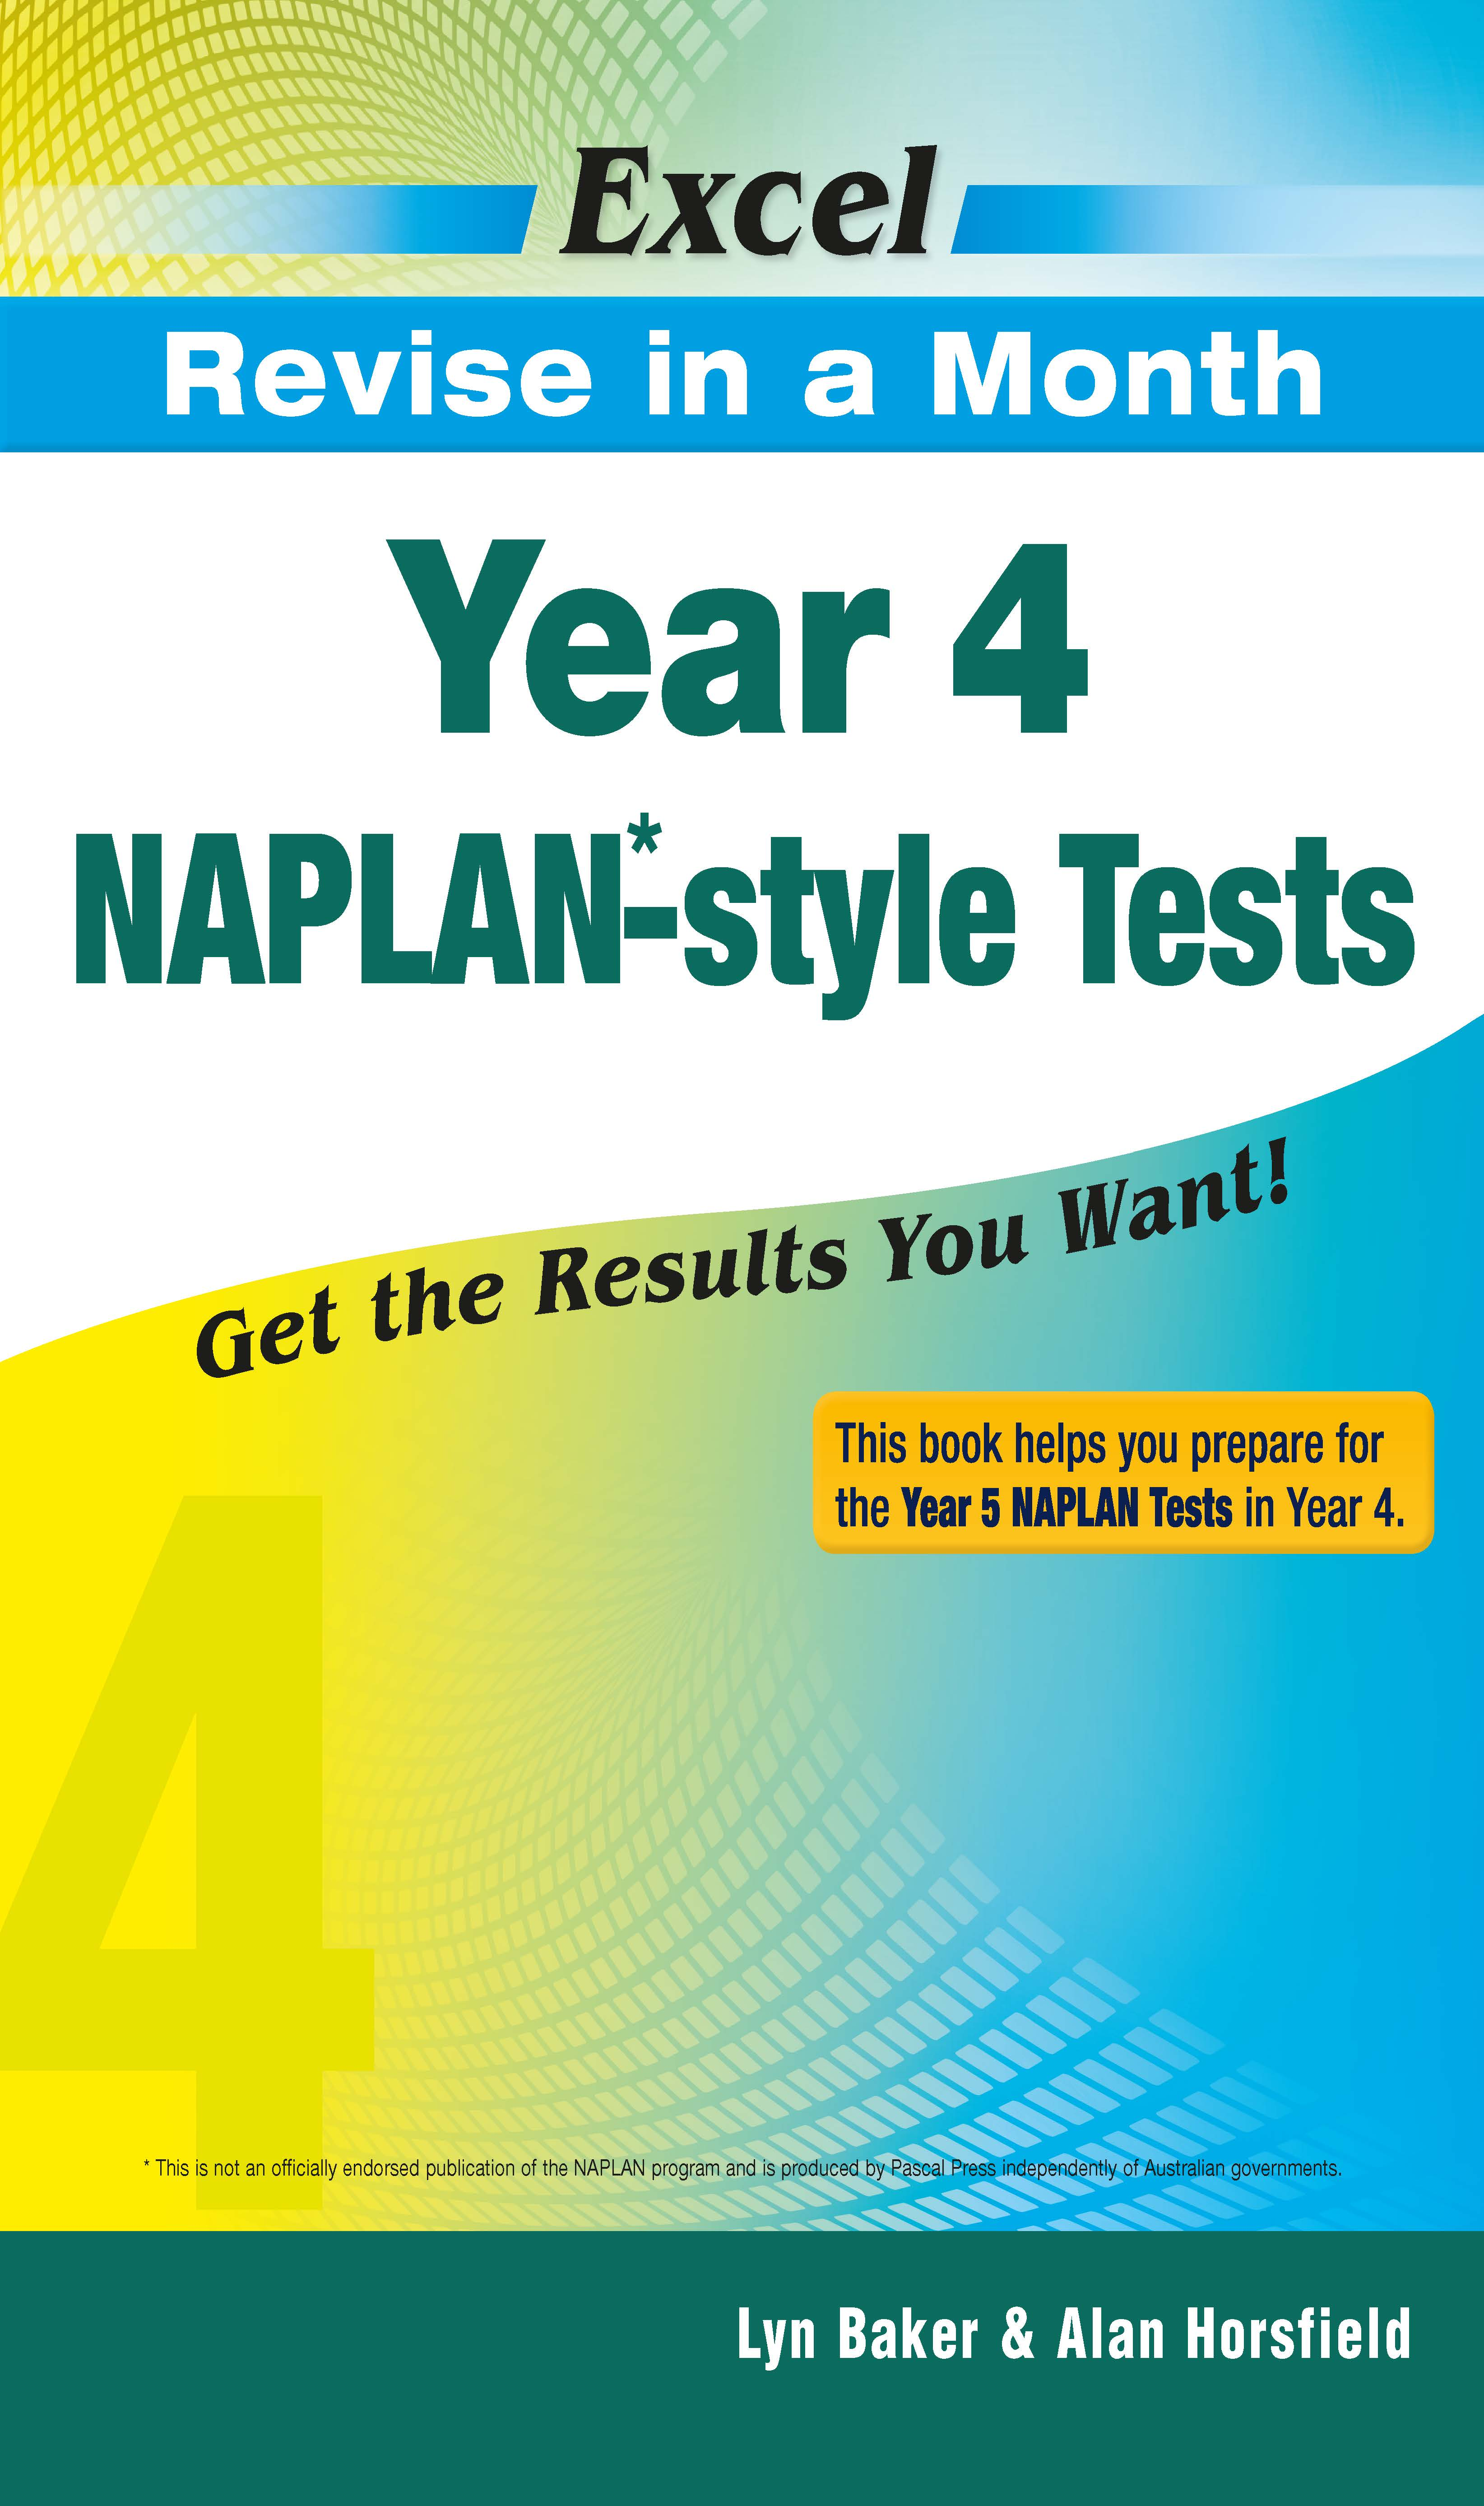 Excel Revise in a Month NAPLAN*-style Tests Year 4